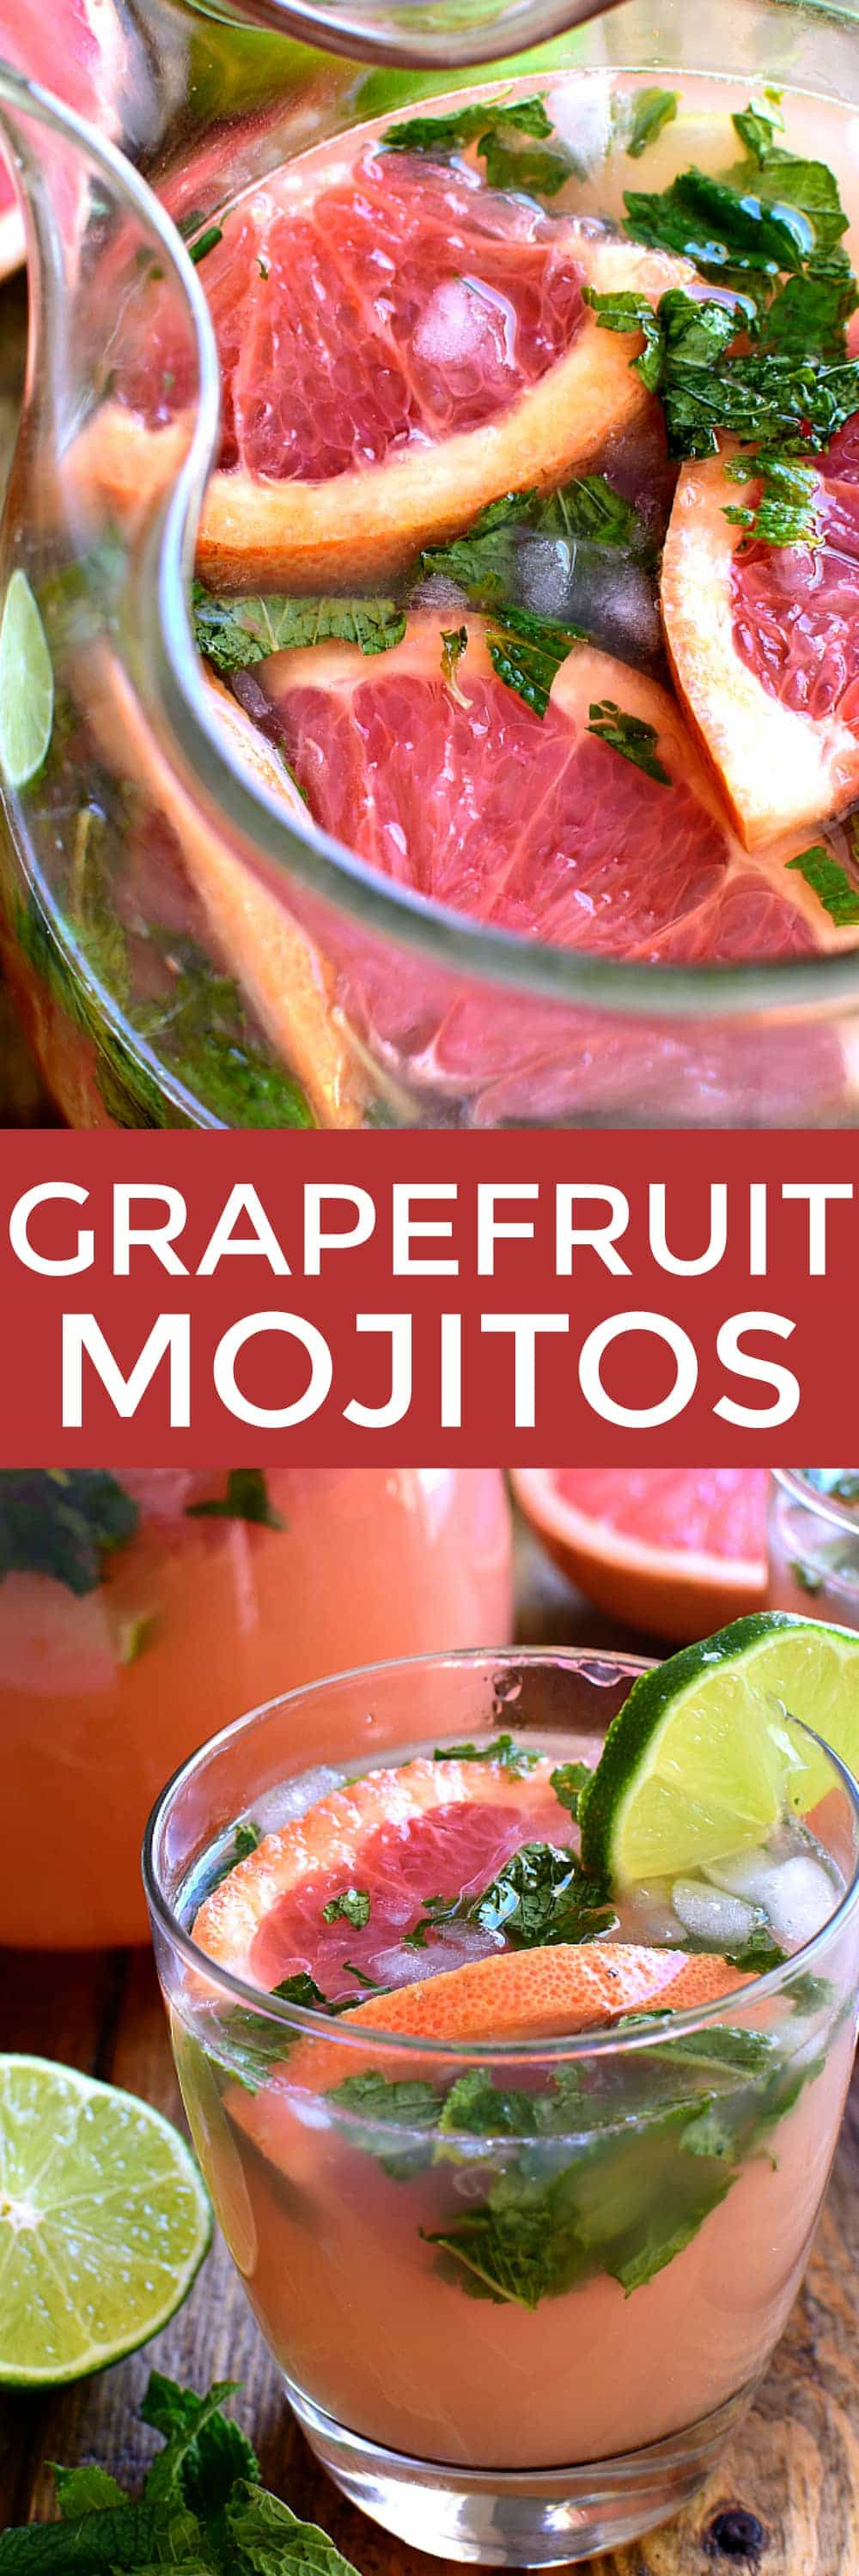 Grapefruit Mojitos are a delicious twist on a classic mojito. These easy mojitos combine grapefruit juice, lime juice, mint, and rum in a refreshing drink